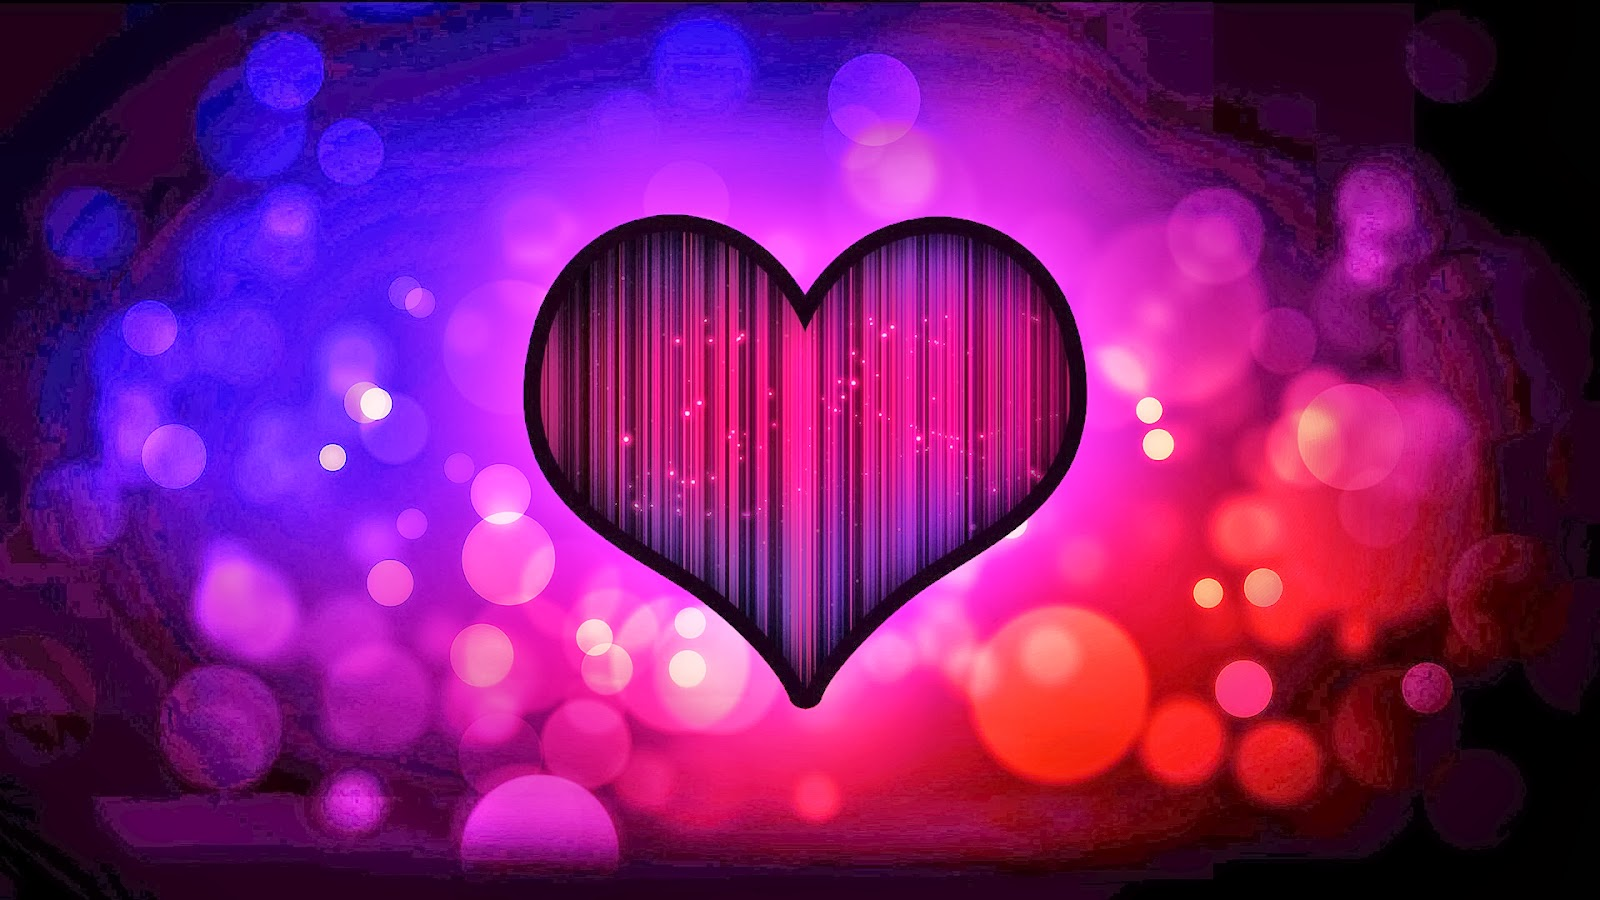 Hot girl wallpaper beautiful love heart symbol hd wallpapers beautiful love heart symbol hd wallpapers images pictures photos gallery free download biocorpaavc Gallery